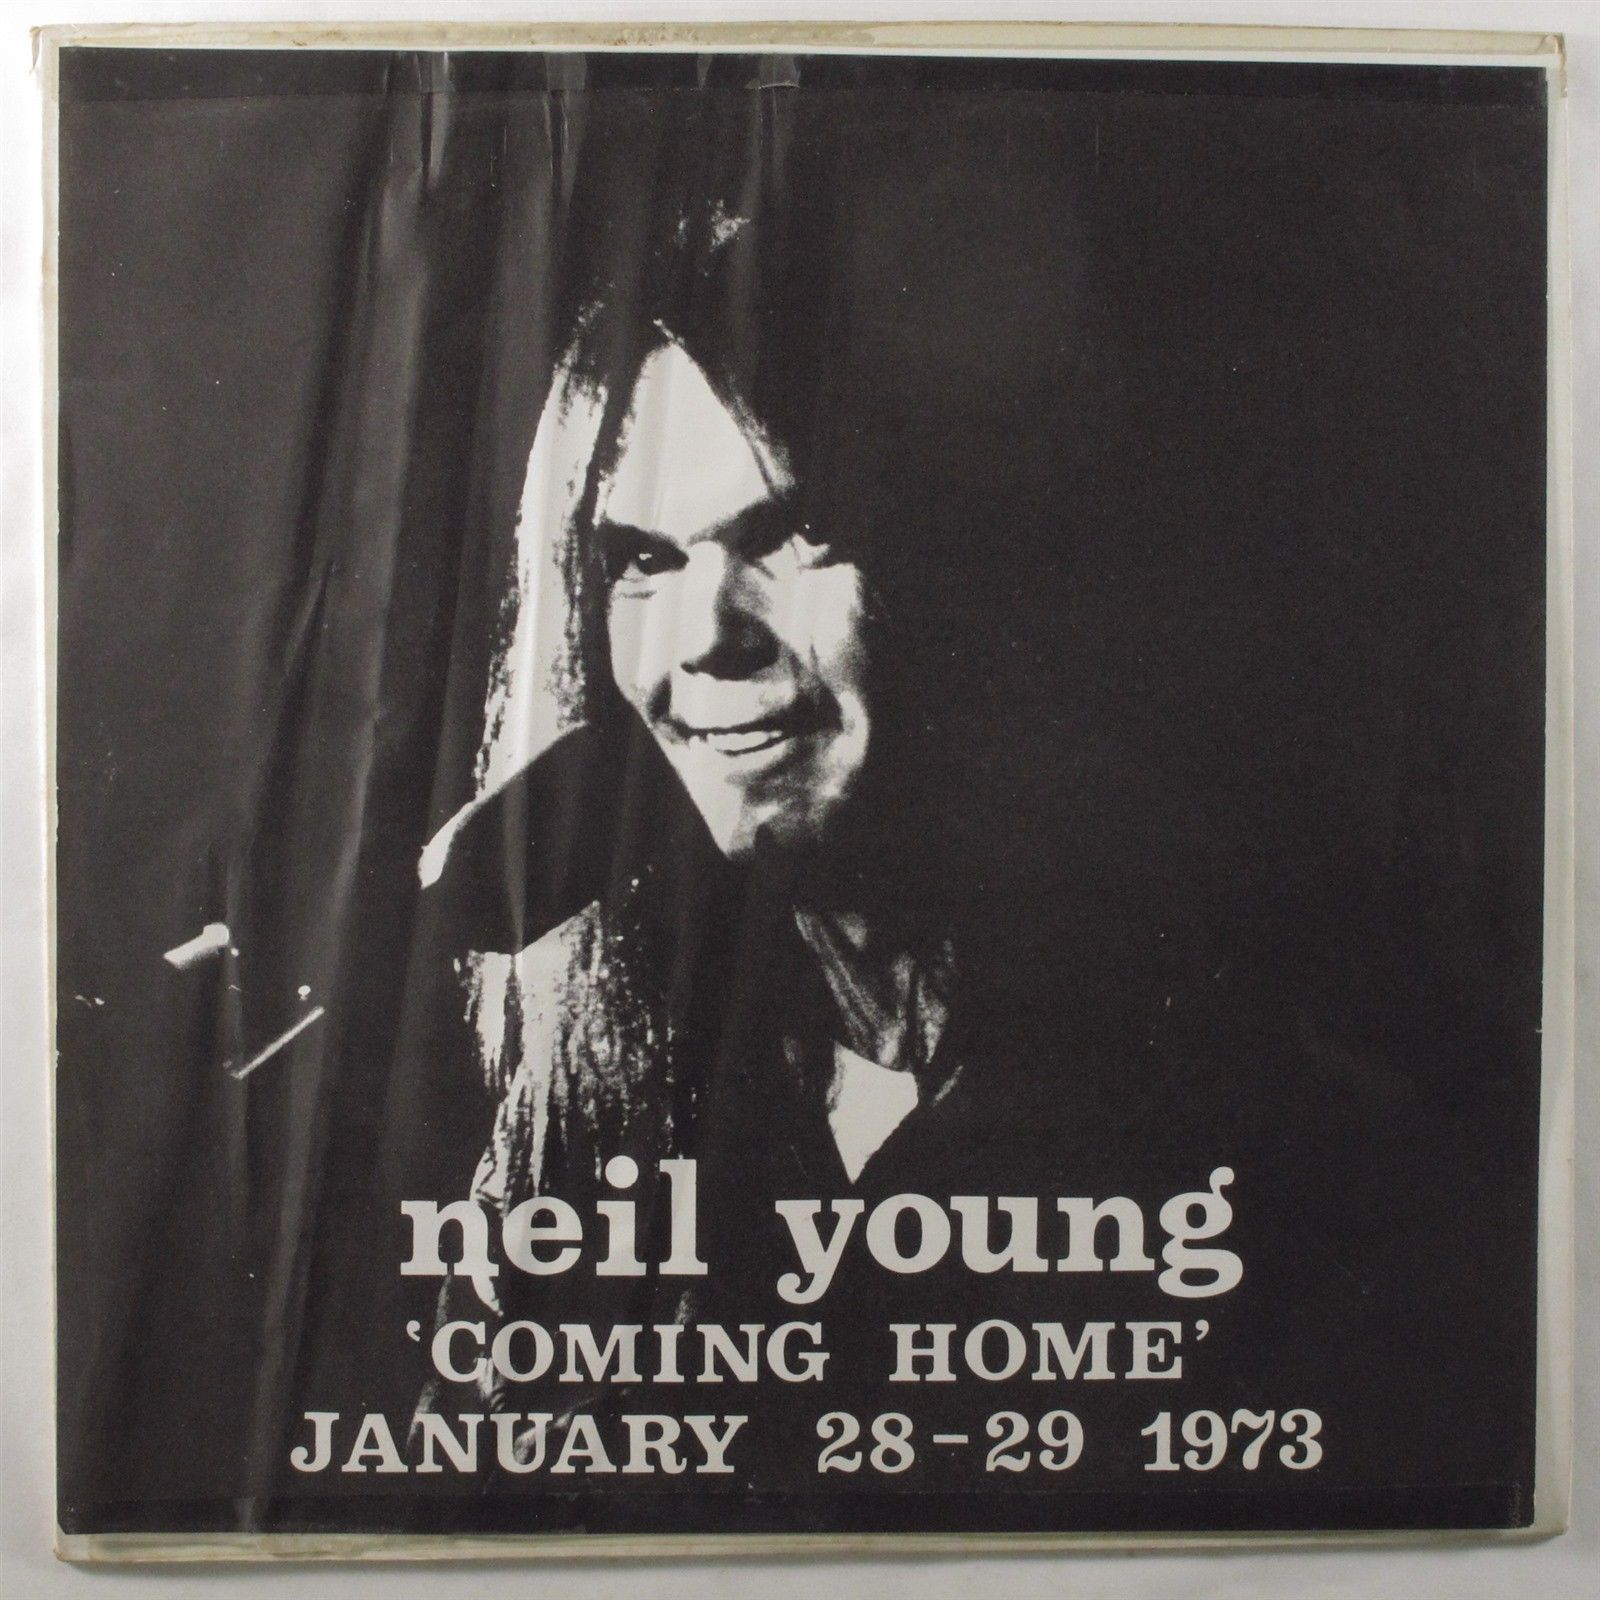 NEIL YOUNG Coming Home January 28-19 1973 LP VG+/VG++ unofficial release